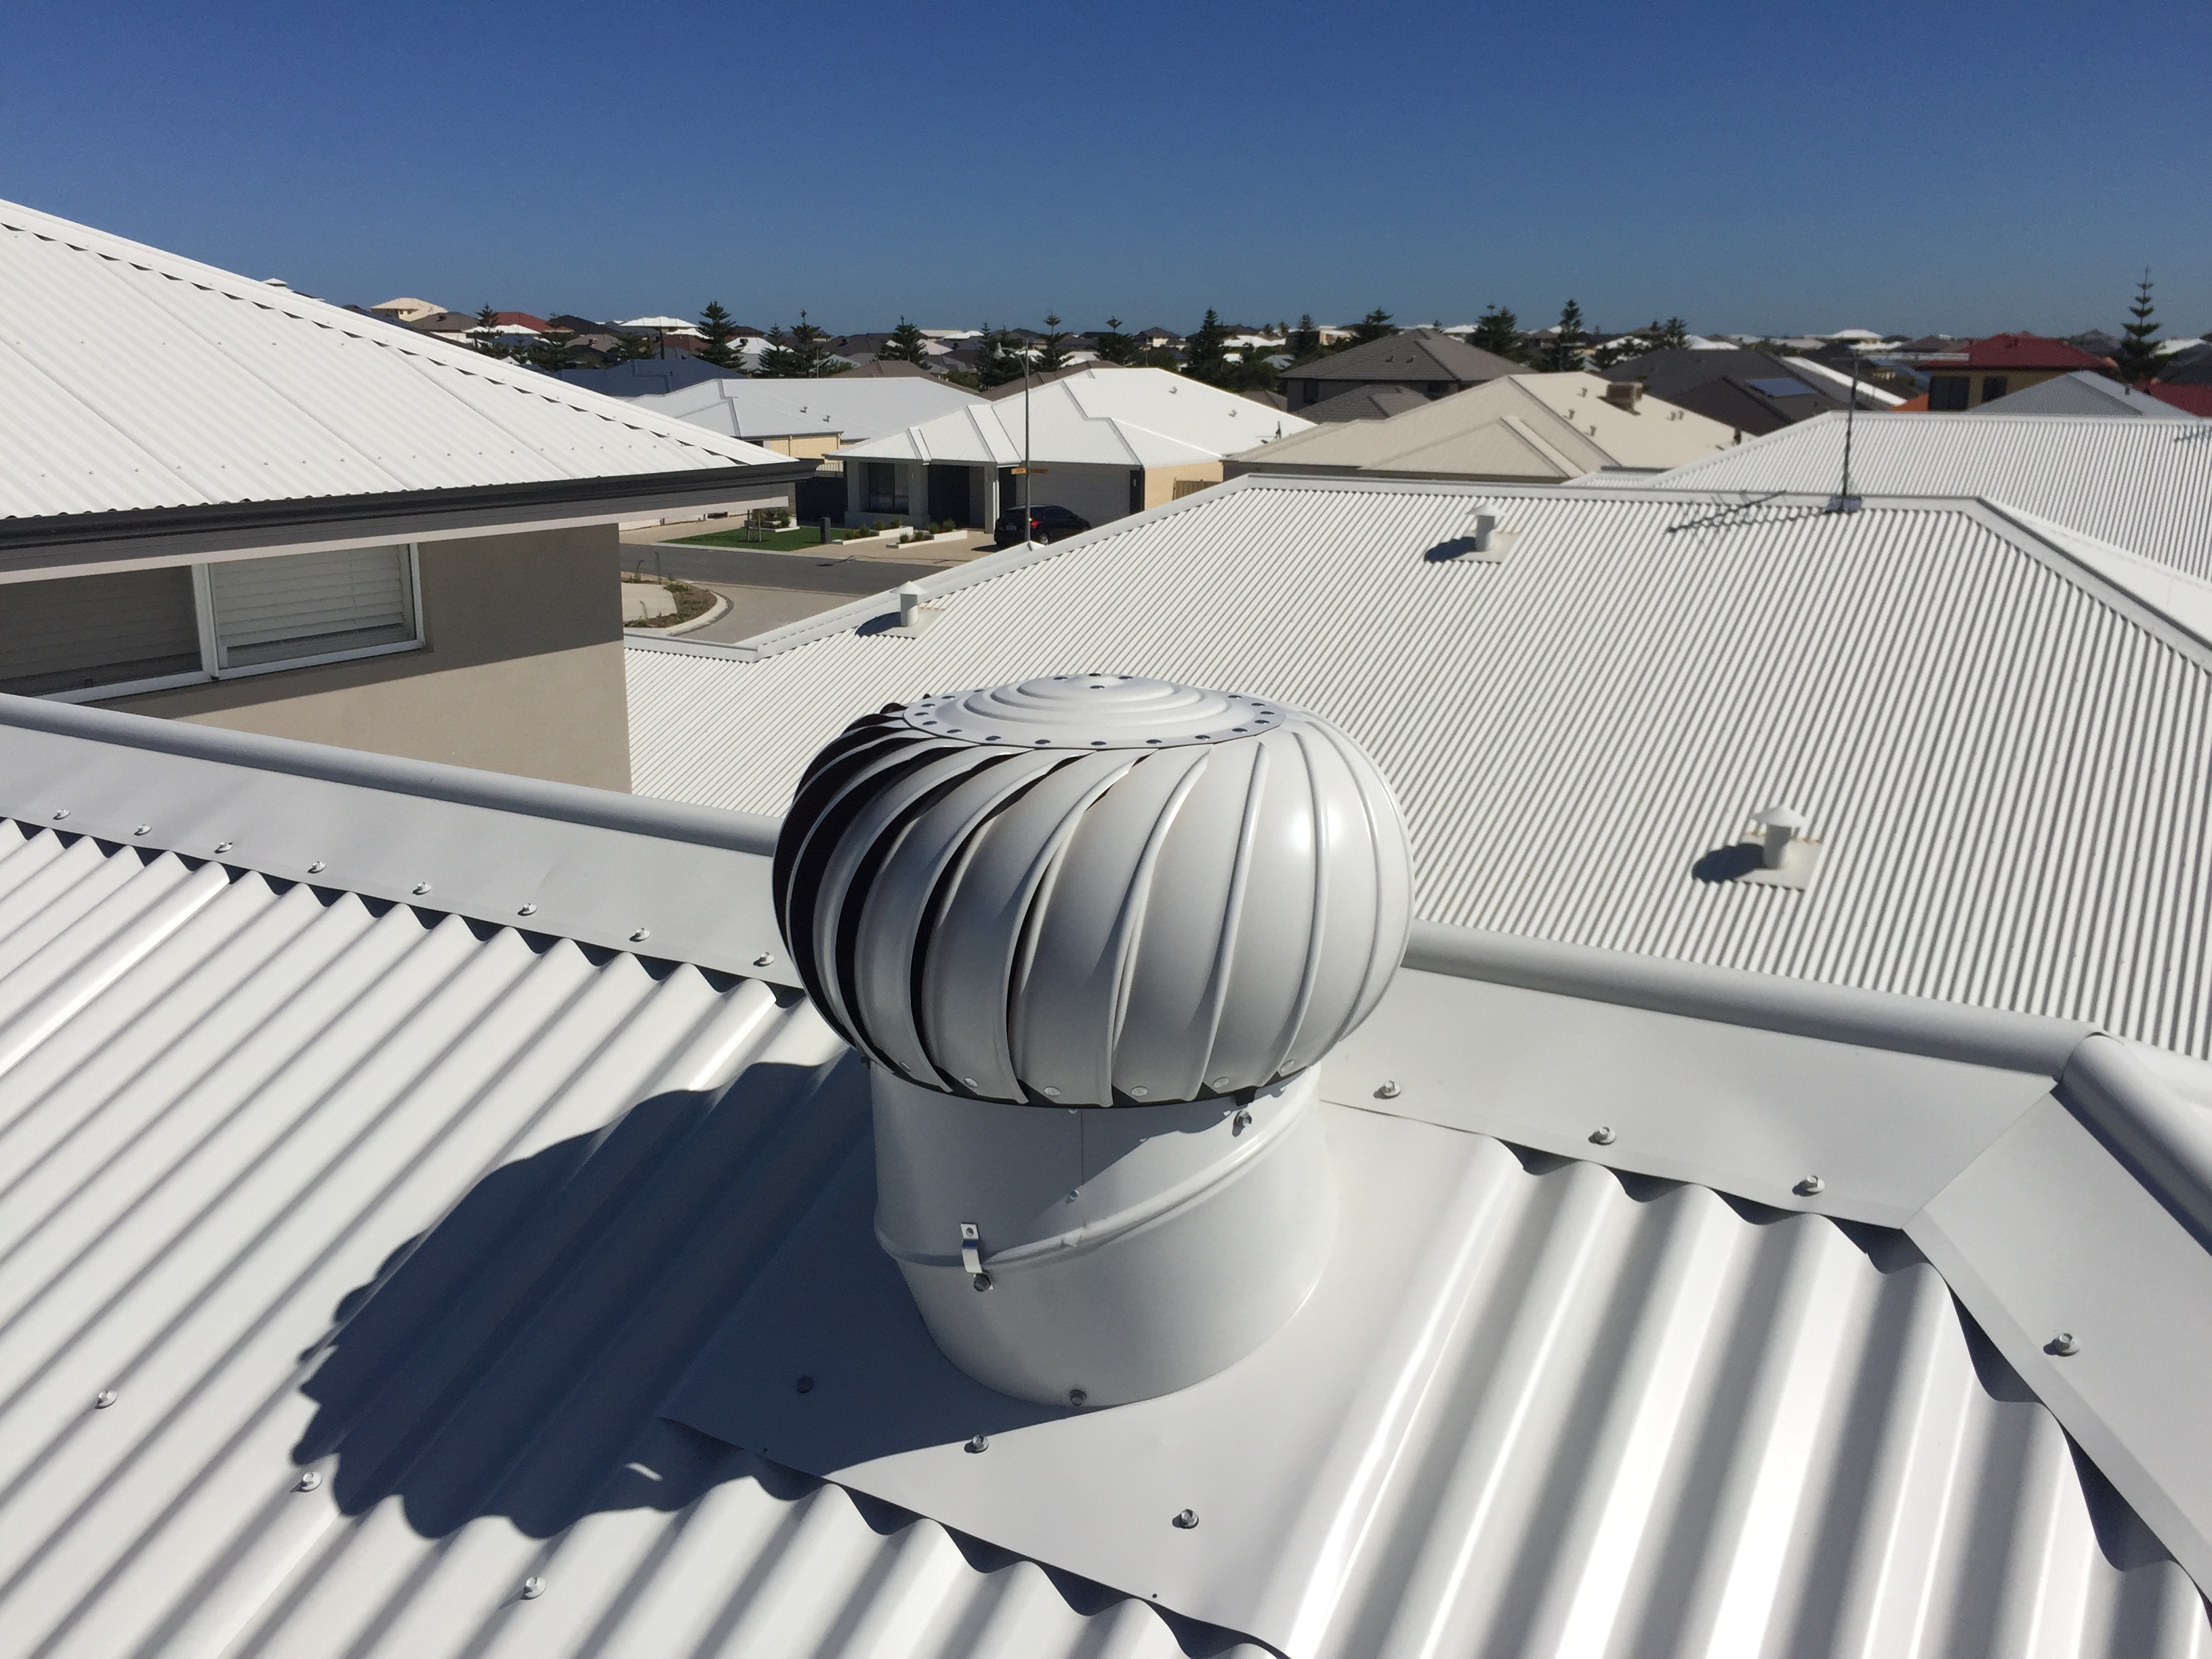 Whirlybird Roof Vent Whirlybirds And Solar Roof Vent